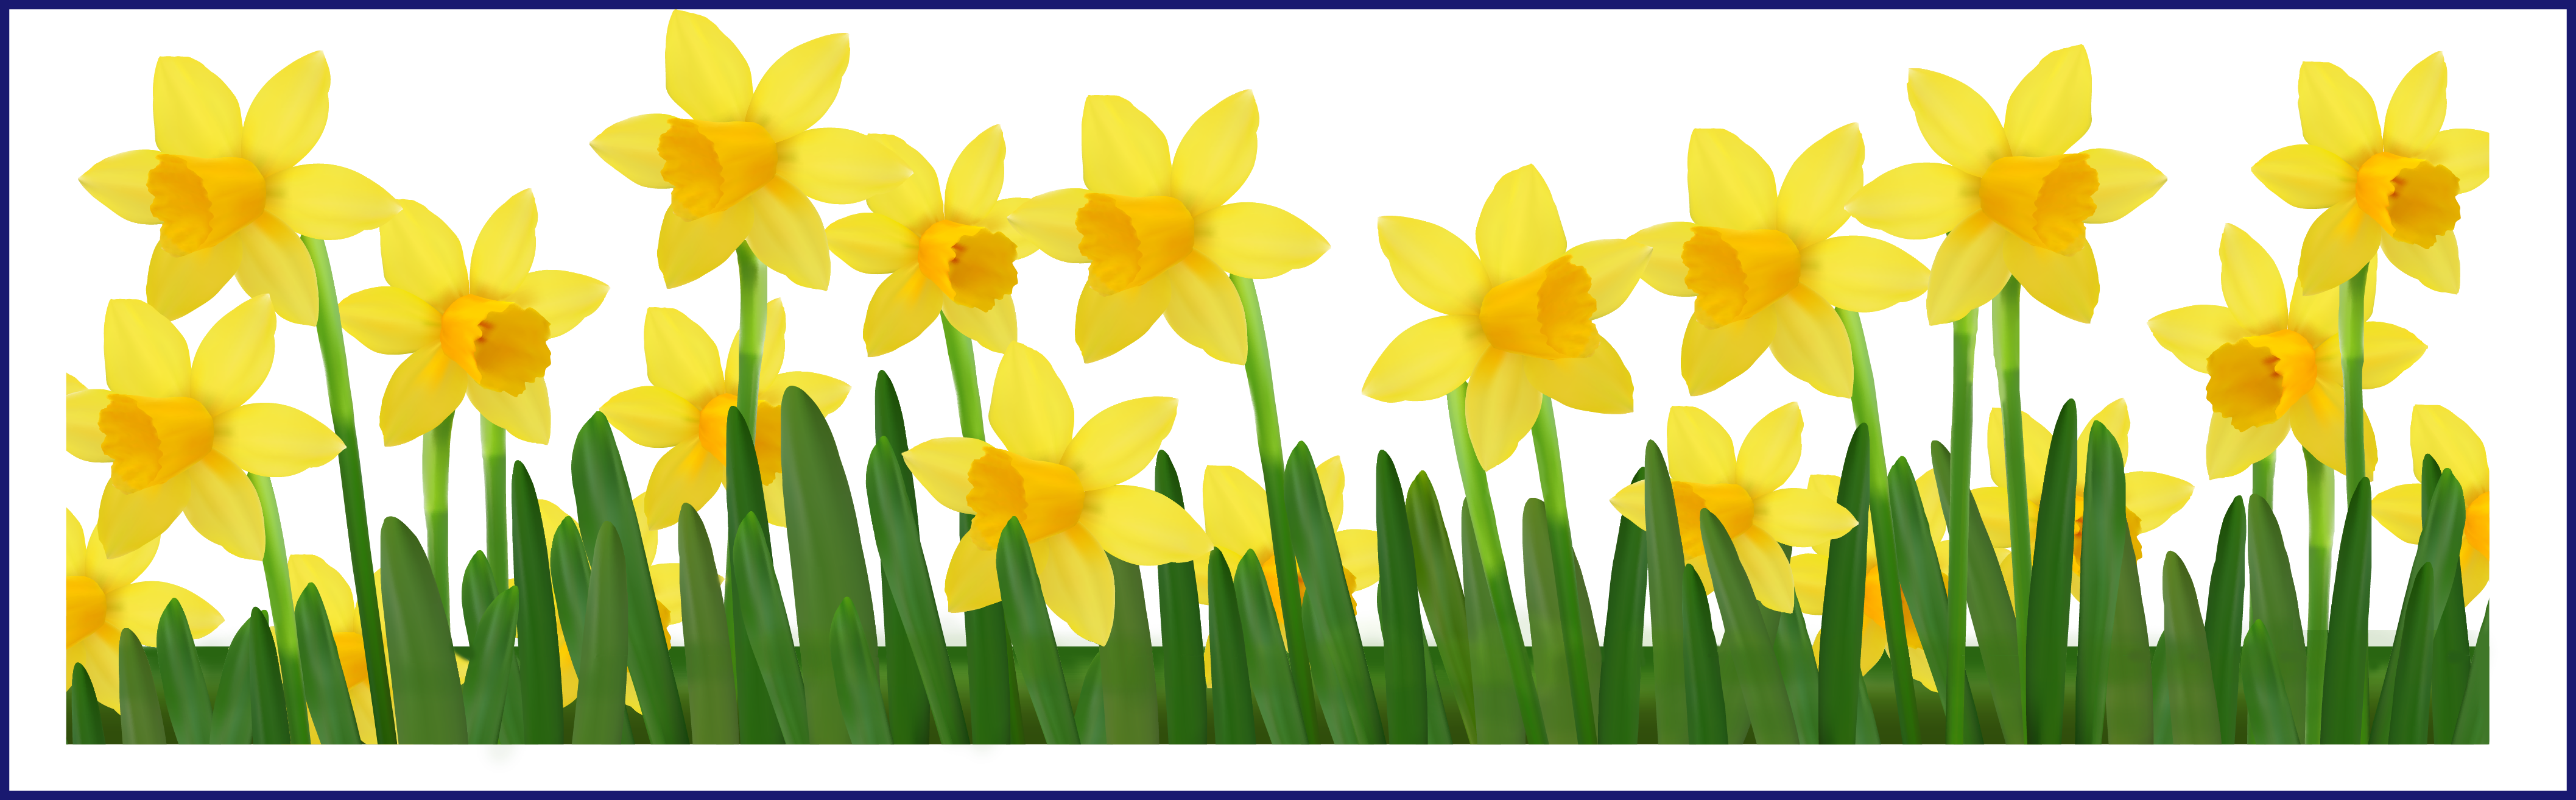 School garden clipart png transparent download Shocking Grass With Daffodils Png Clipart Picture Transparentes ... png transparent download